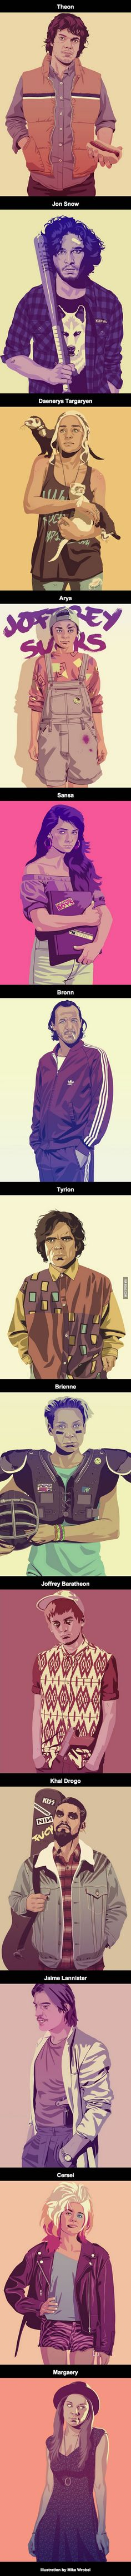 Game of Thrones 90's Style by Mike Wrobel... et avec un côté GTA vice city